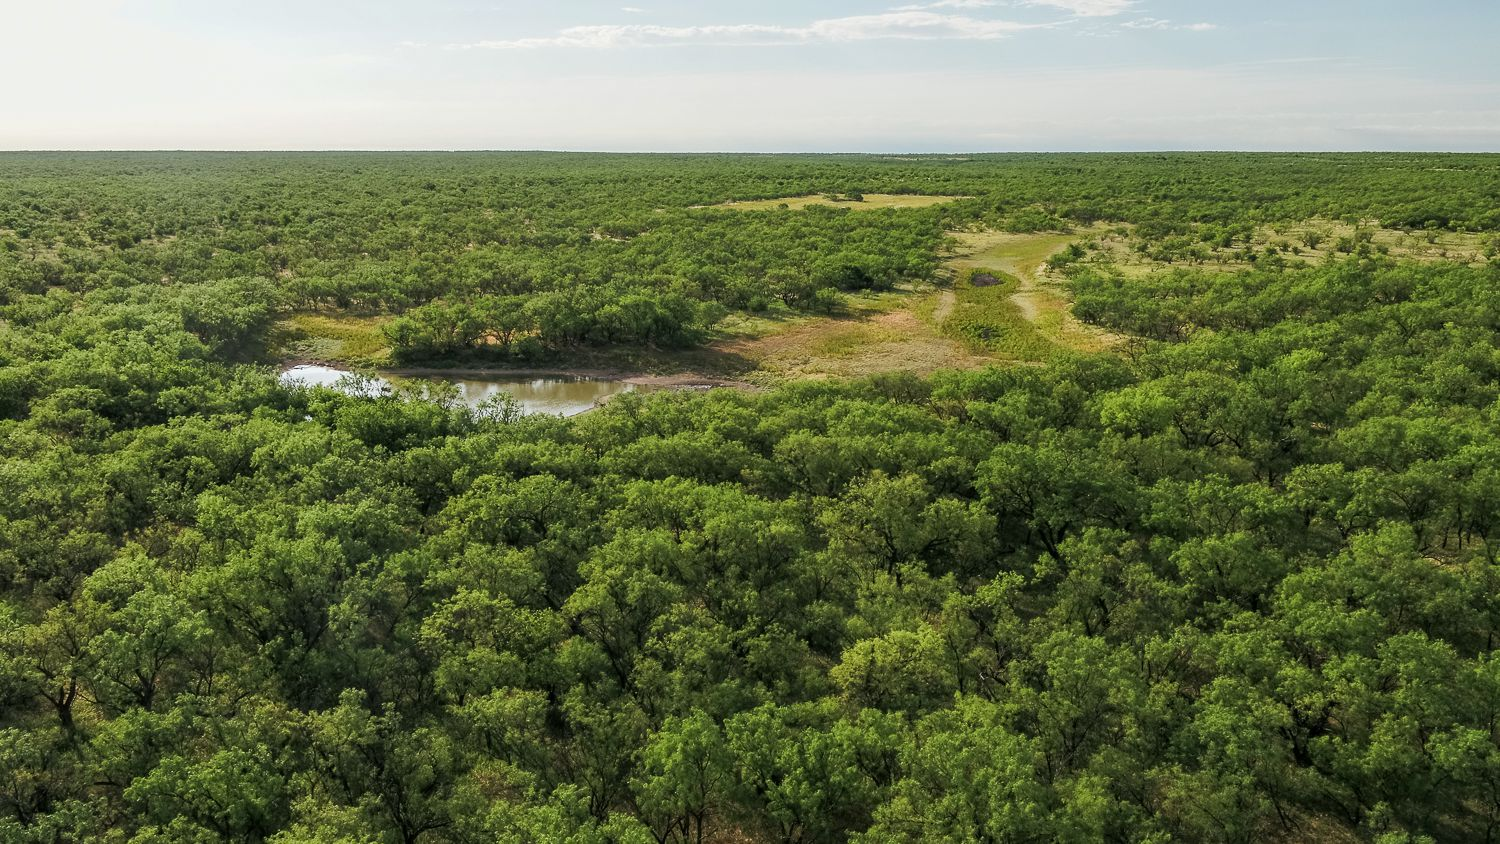 The Comanche Crest Ranch is two hours west of Fort Worth.